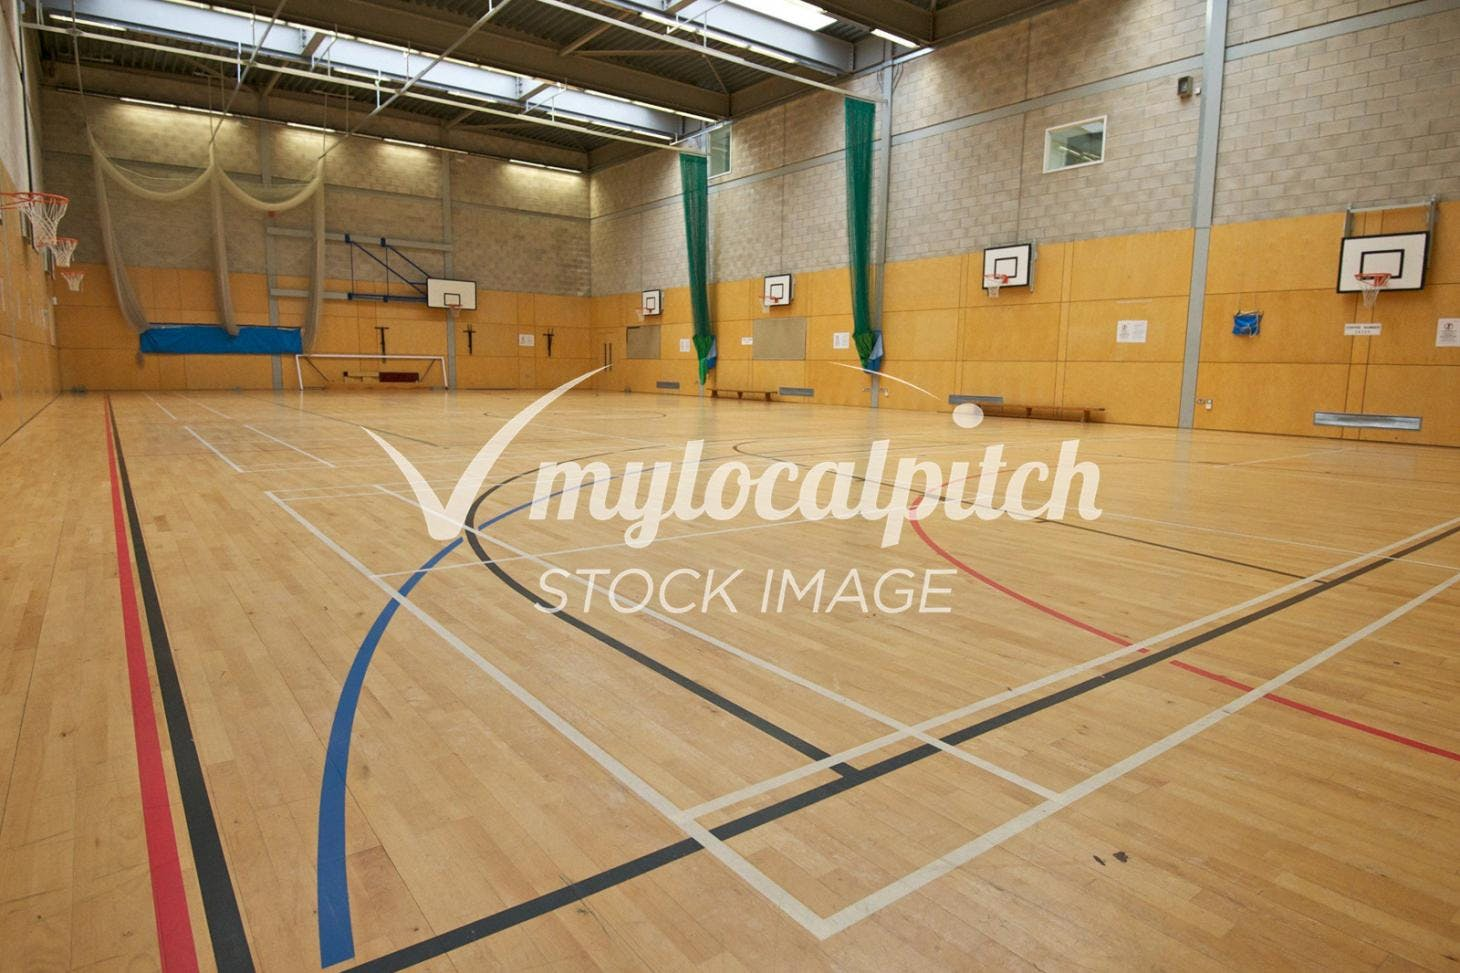 Stanborough School Indoor basketball court